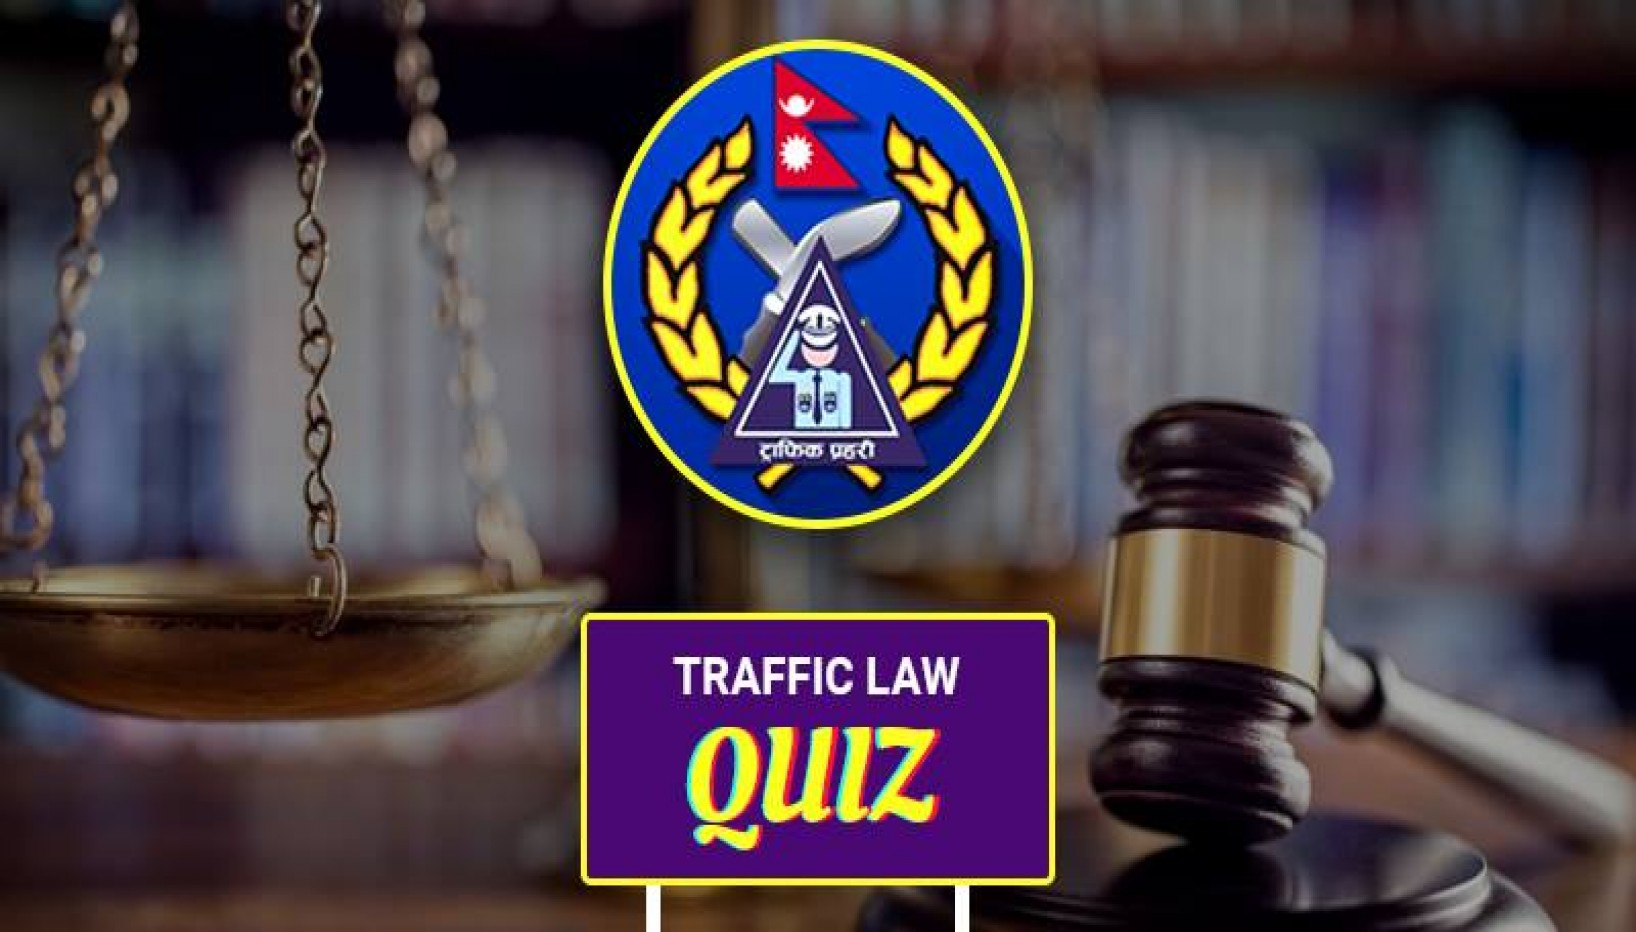 How Well Do You Know Nepali Traffic Laws? Take This Quiz To Find Out!